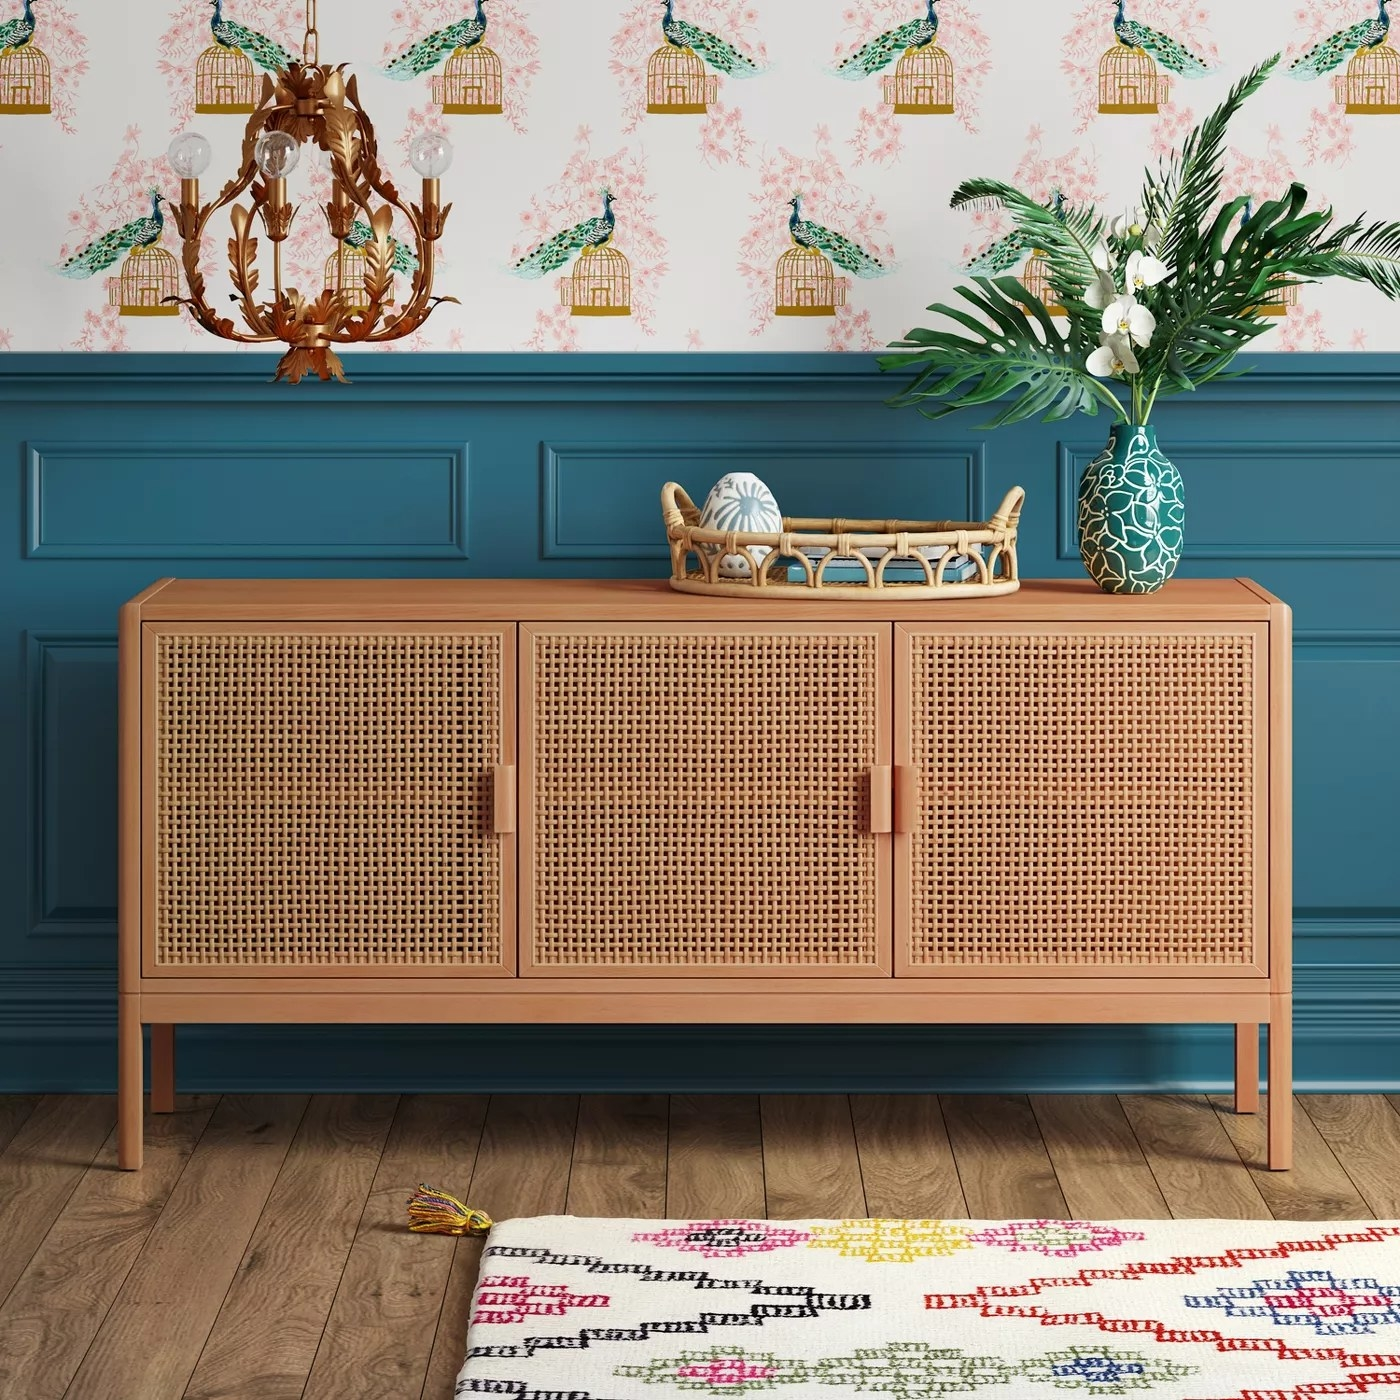 The brown wooden sideboard with three mesh doors